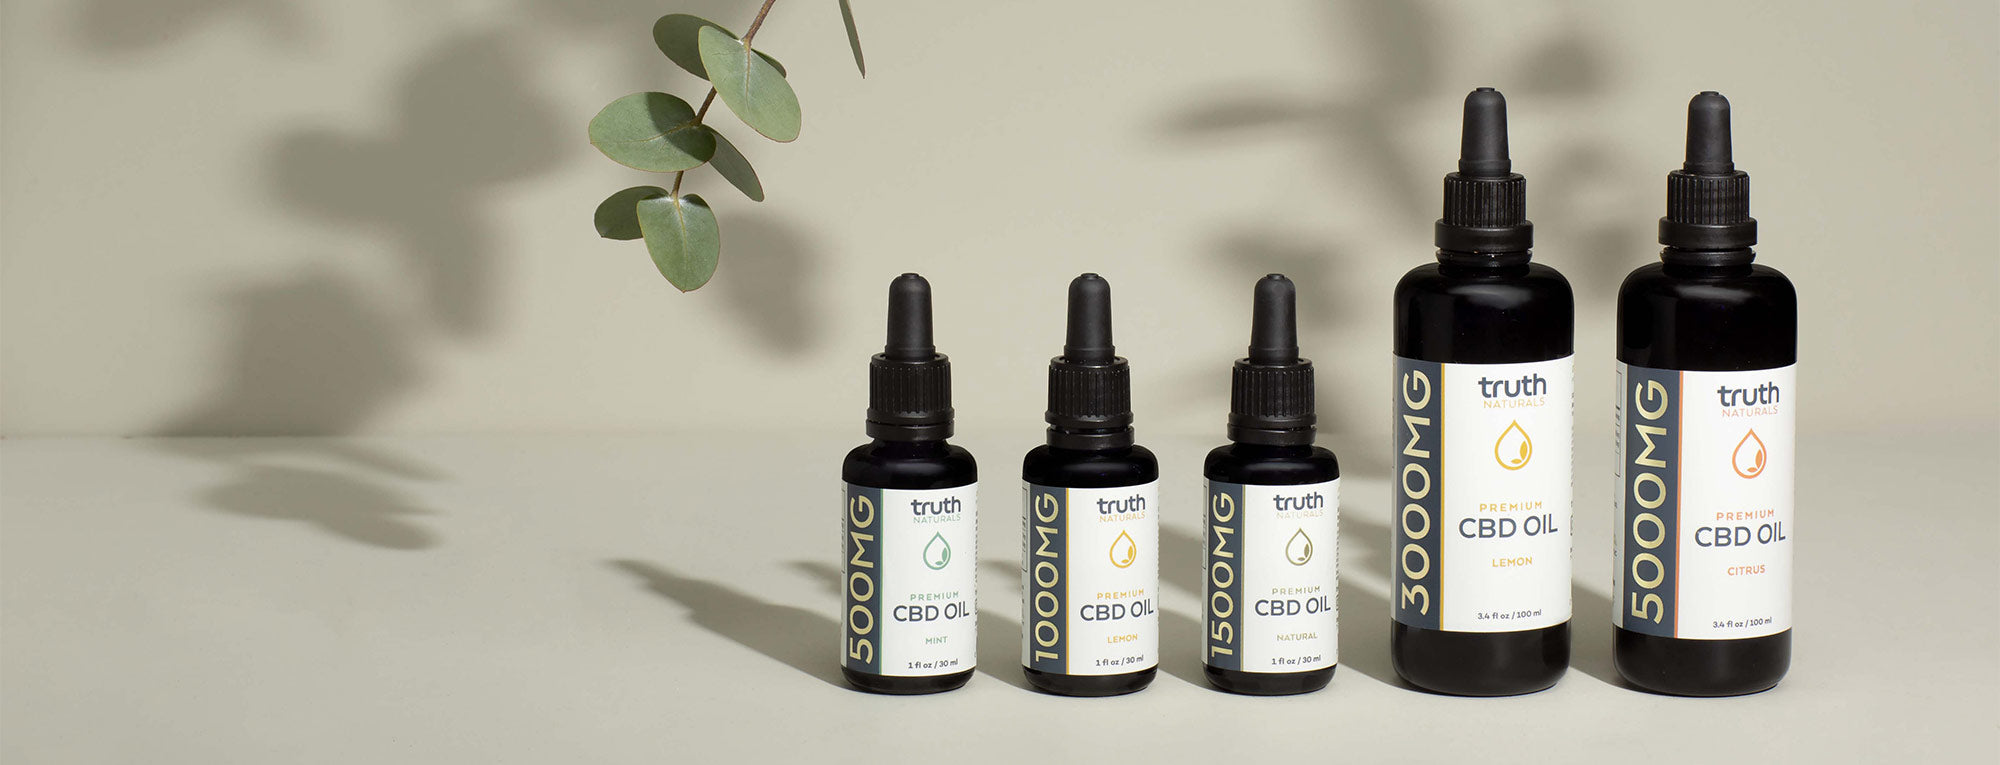 The Reasons Behind the Growing Popularity of CBD